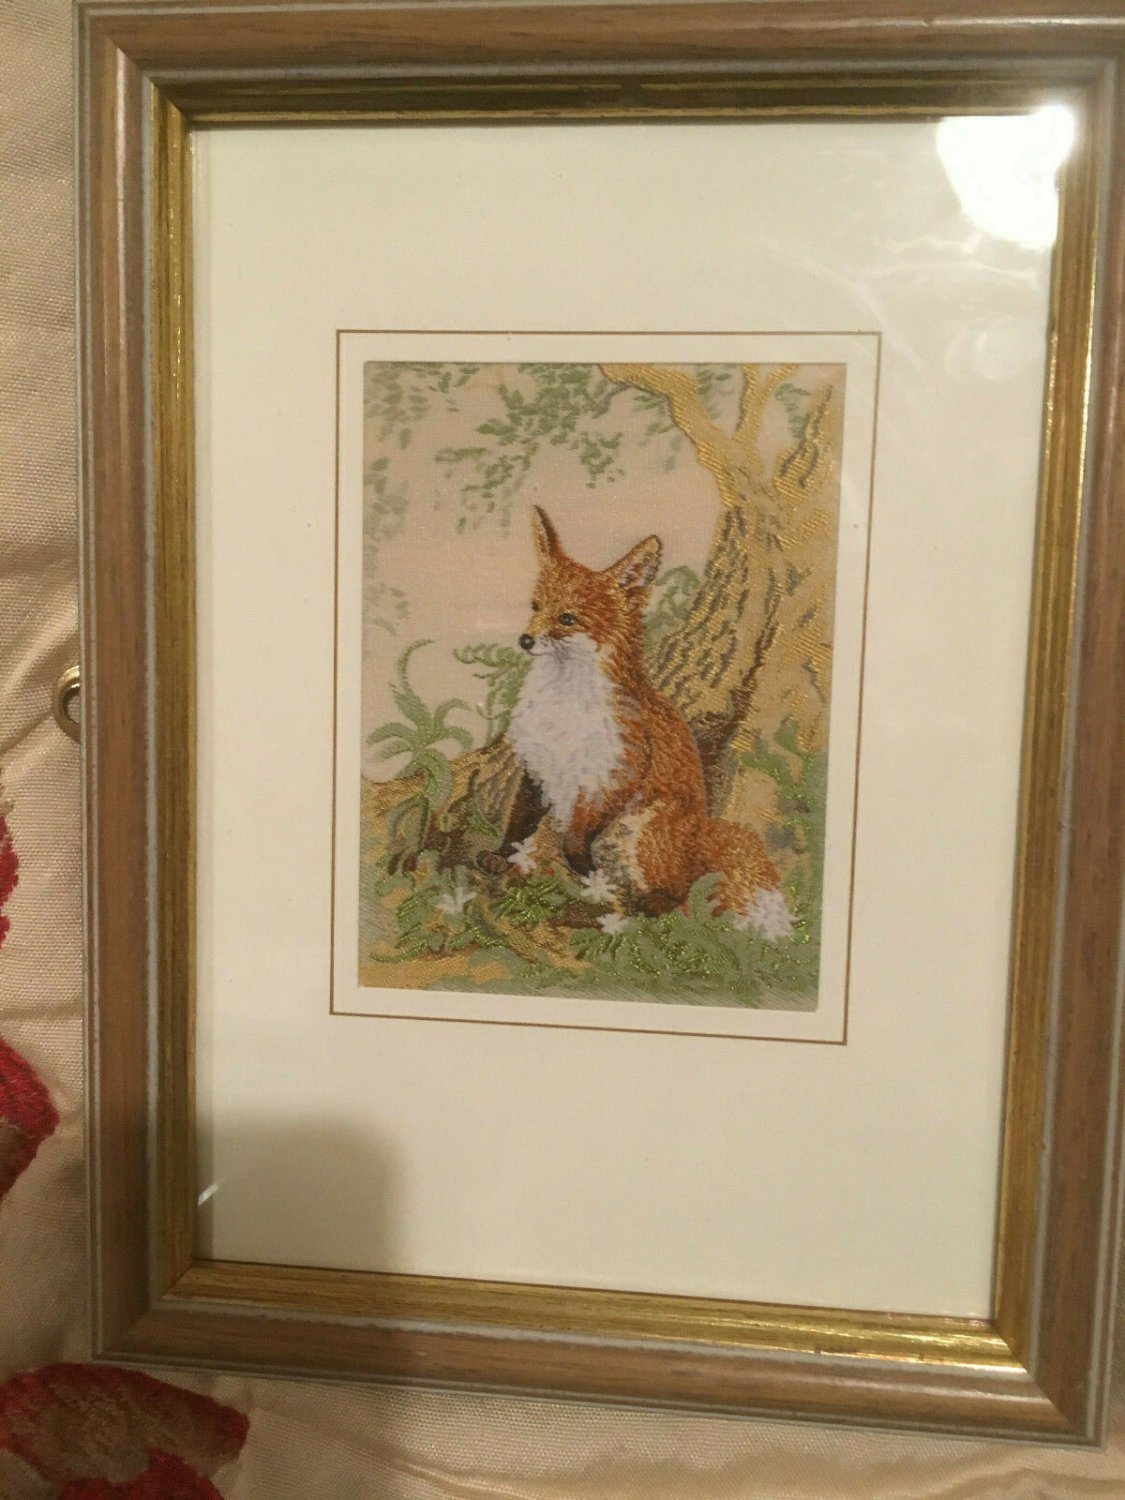 FRAMED SILK WOVEN FOX PICTURE